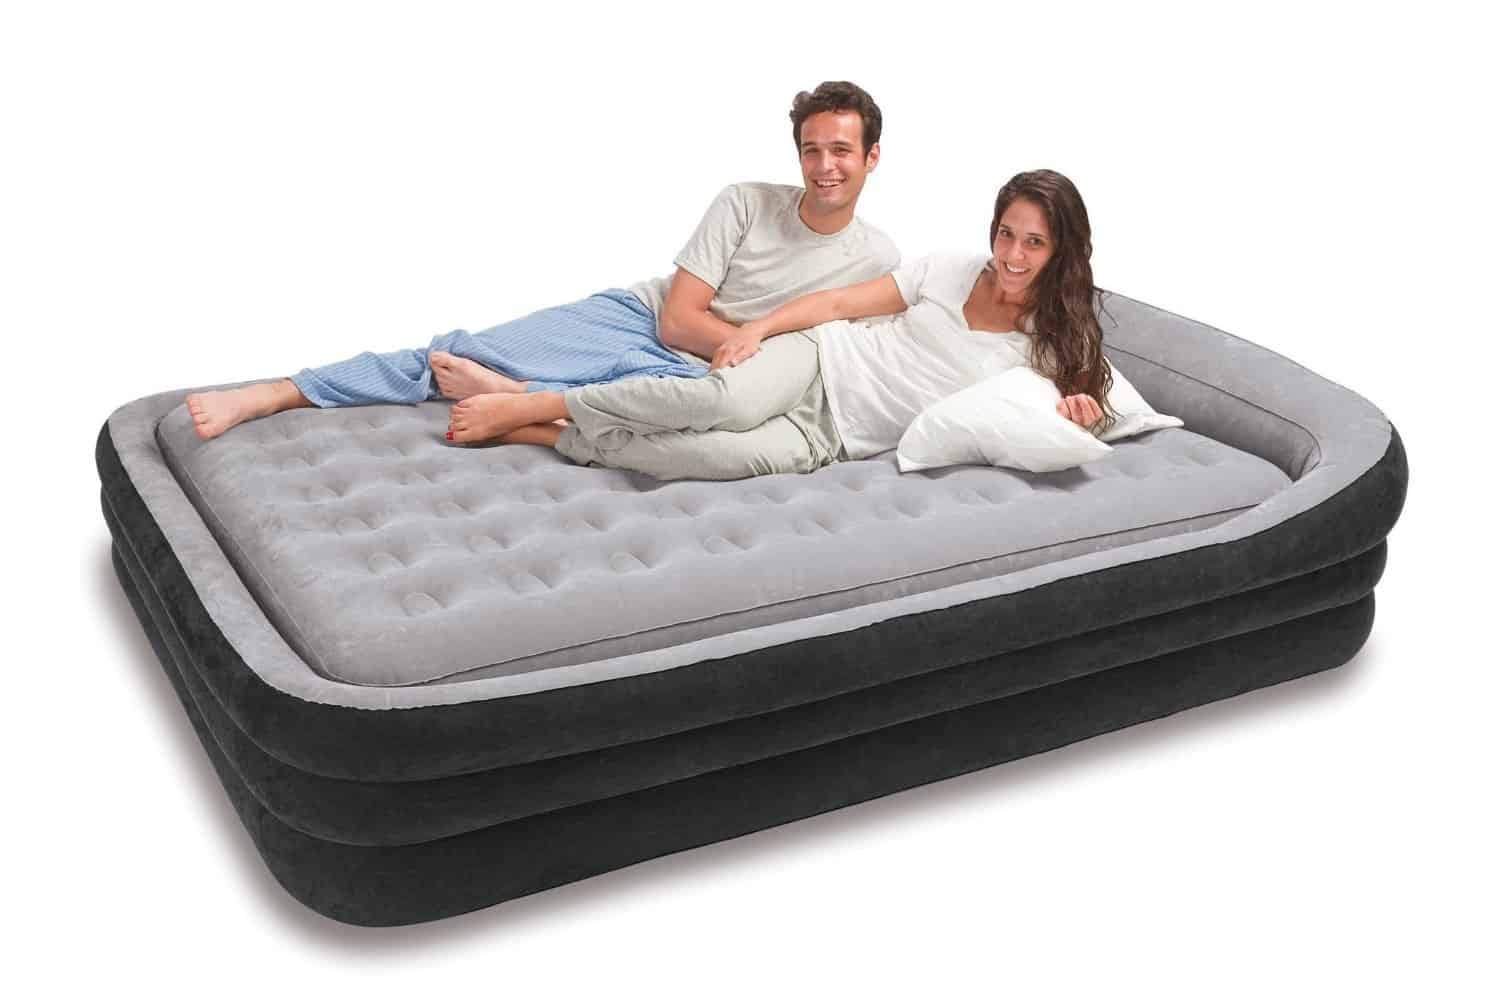 Comfortable Mattress For Newlyweds Couple